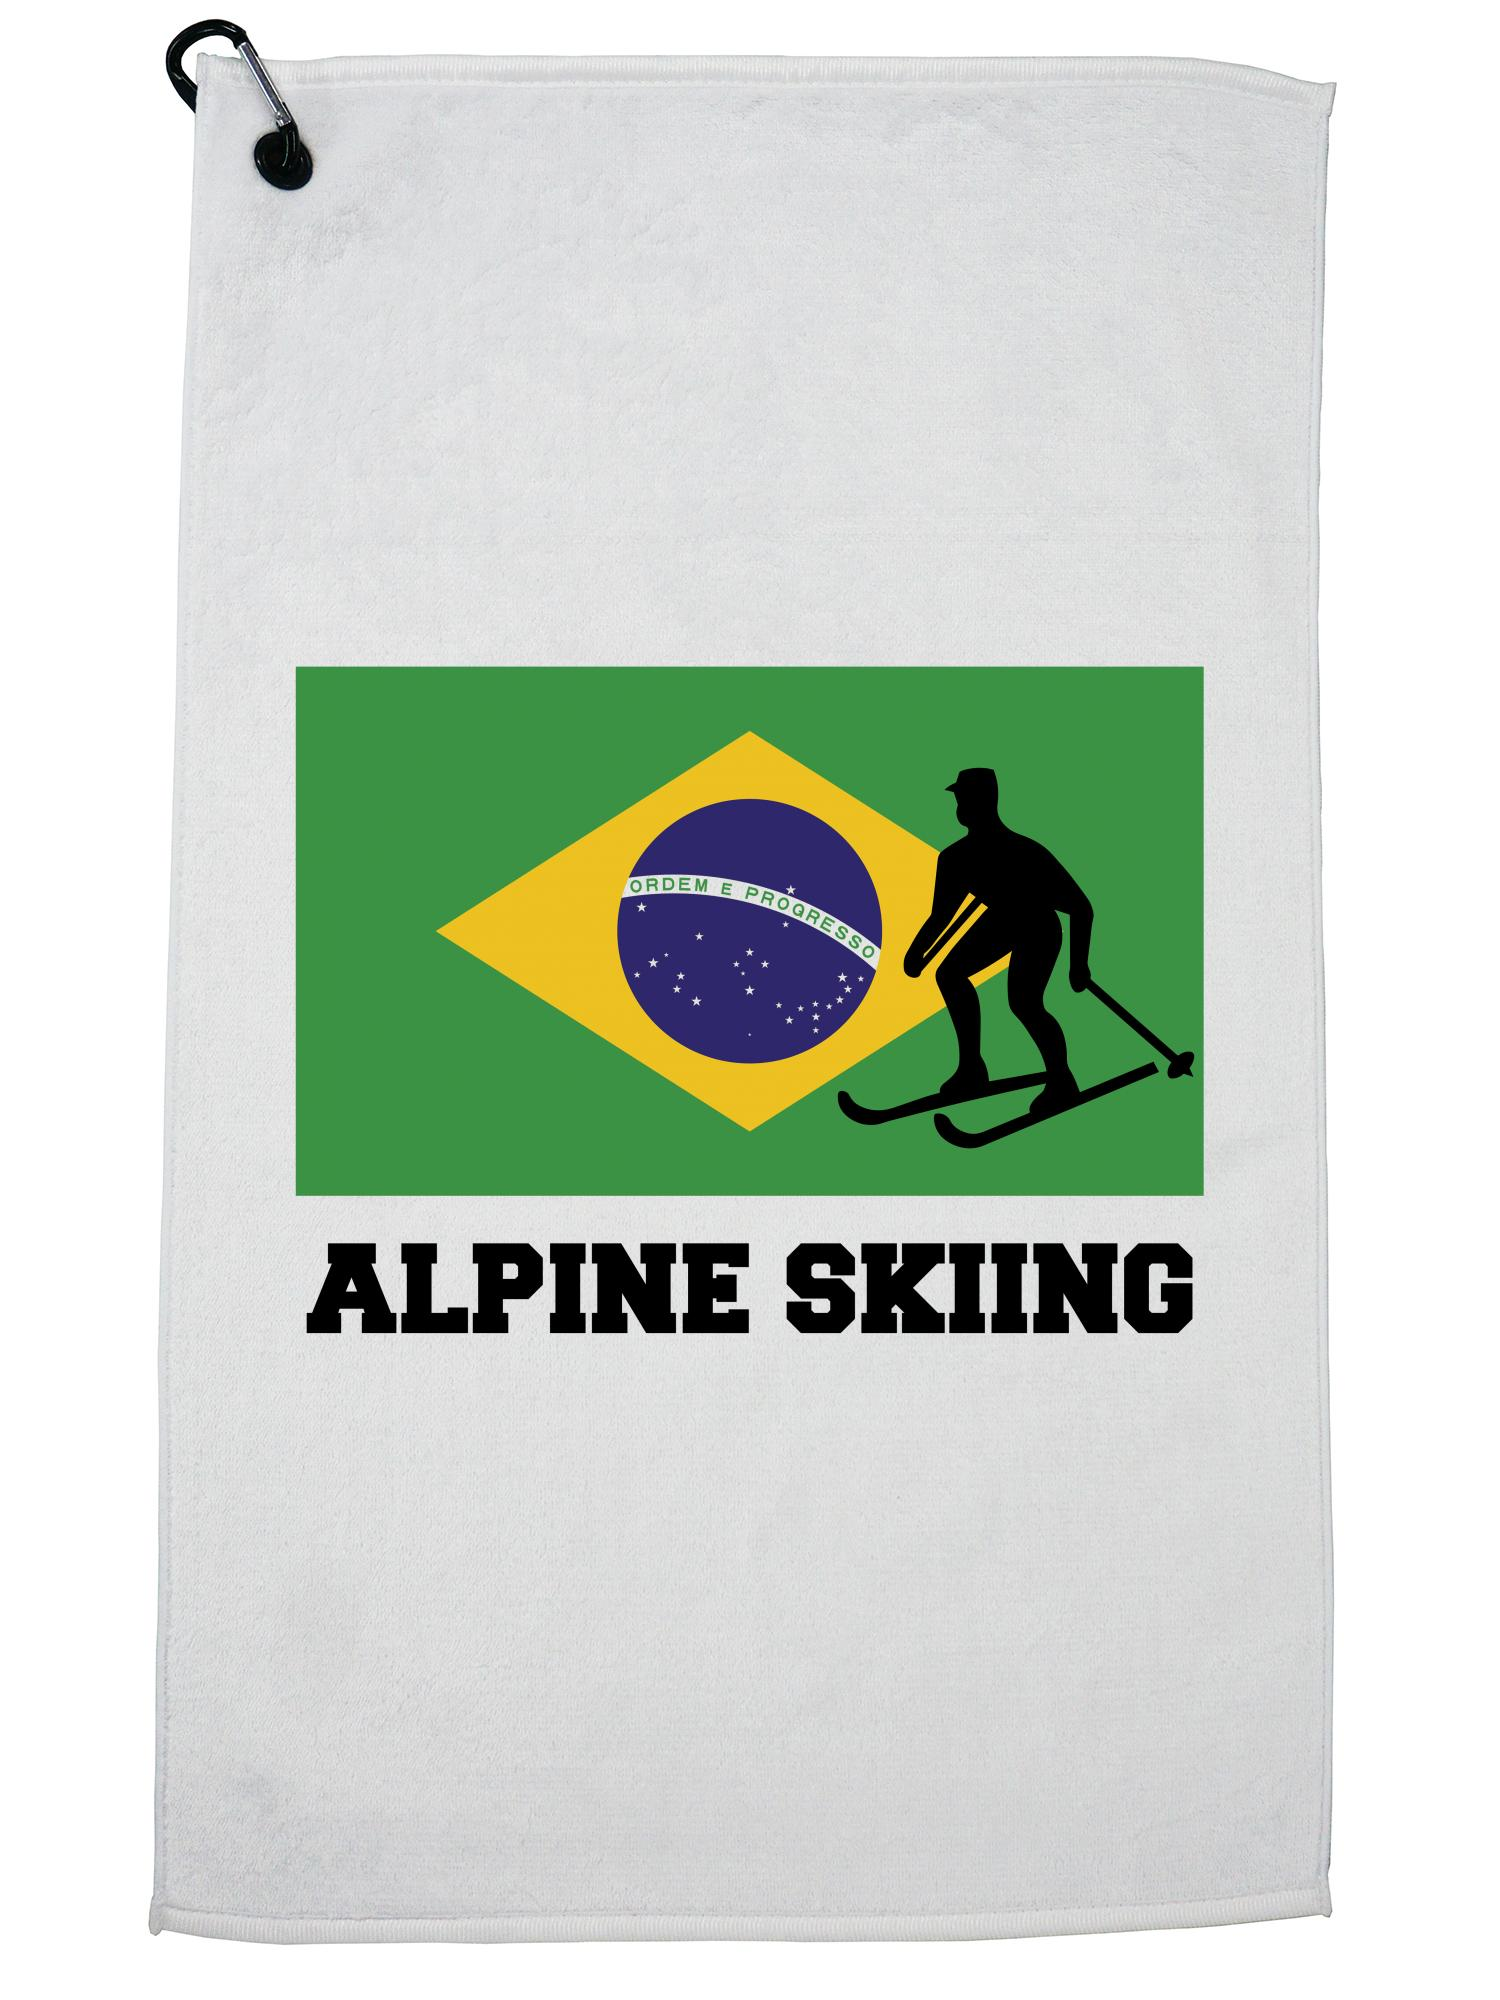 Brazil Olympic Alpine Skiing Flag Silhouette Golf Towel with Carabiner Clip by Hollywood Thread